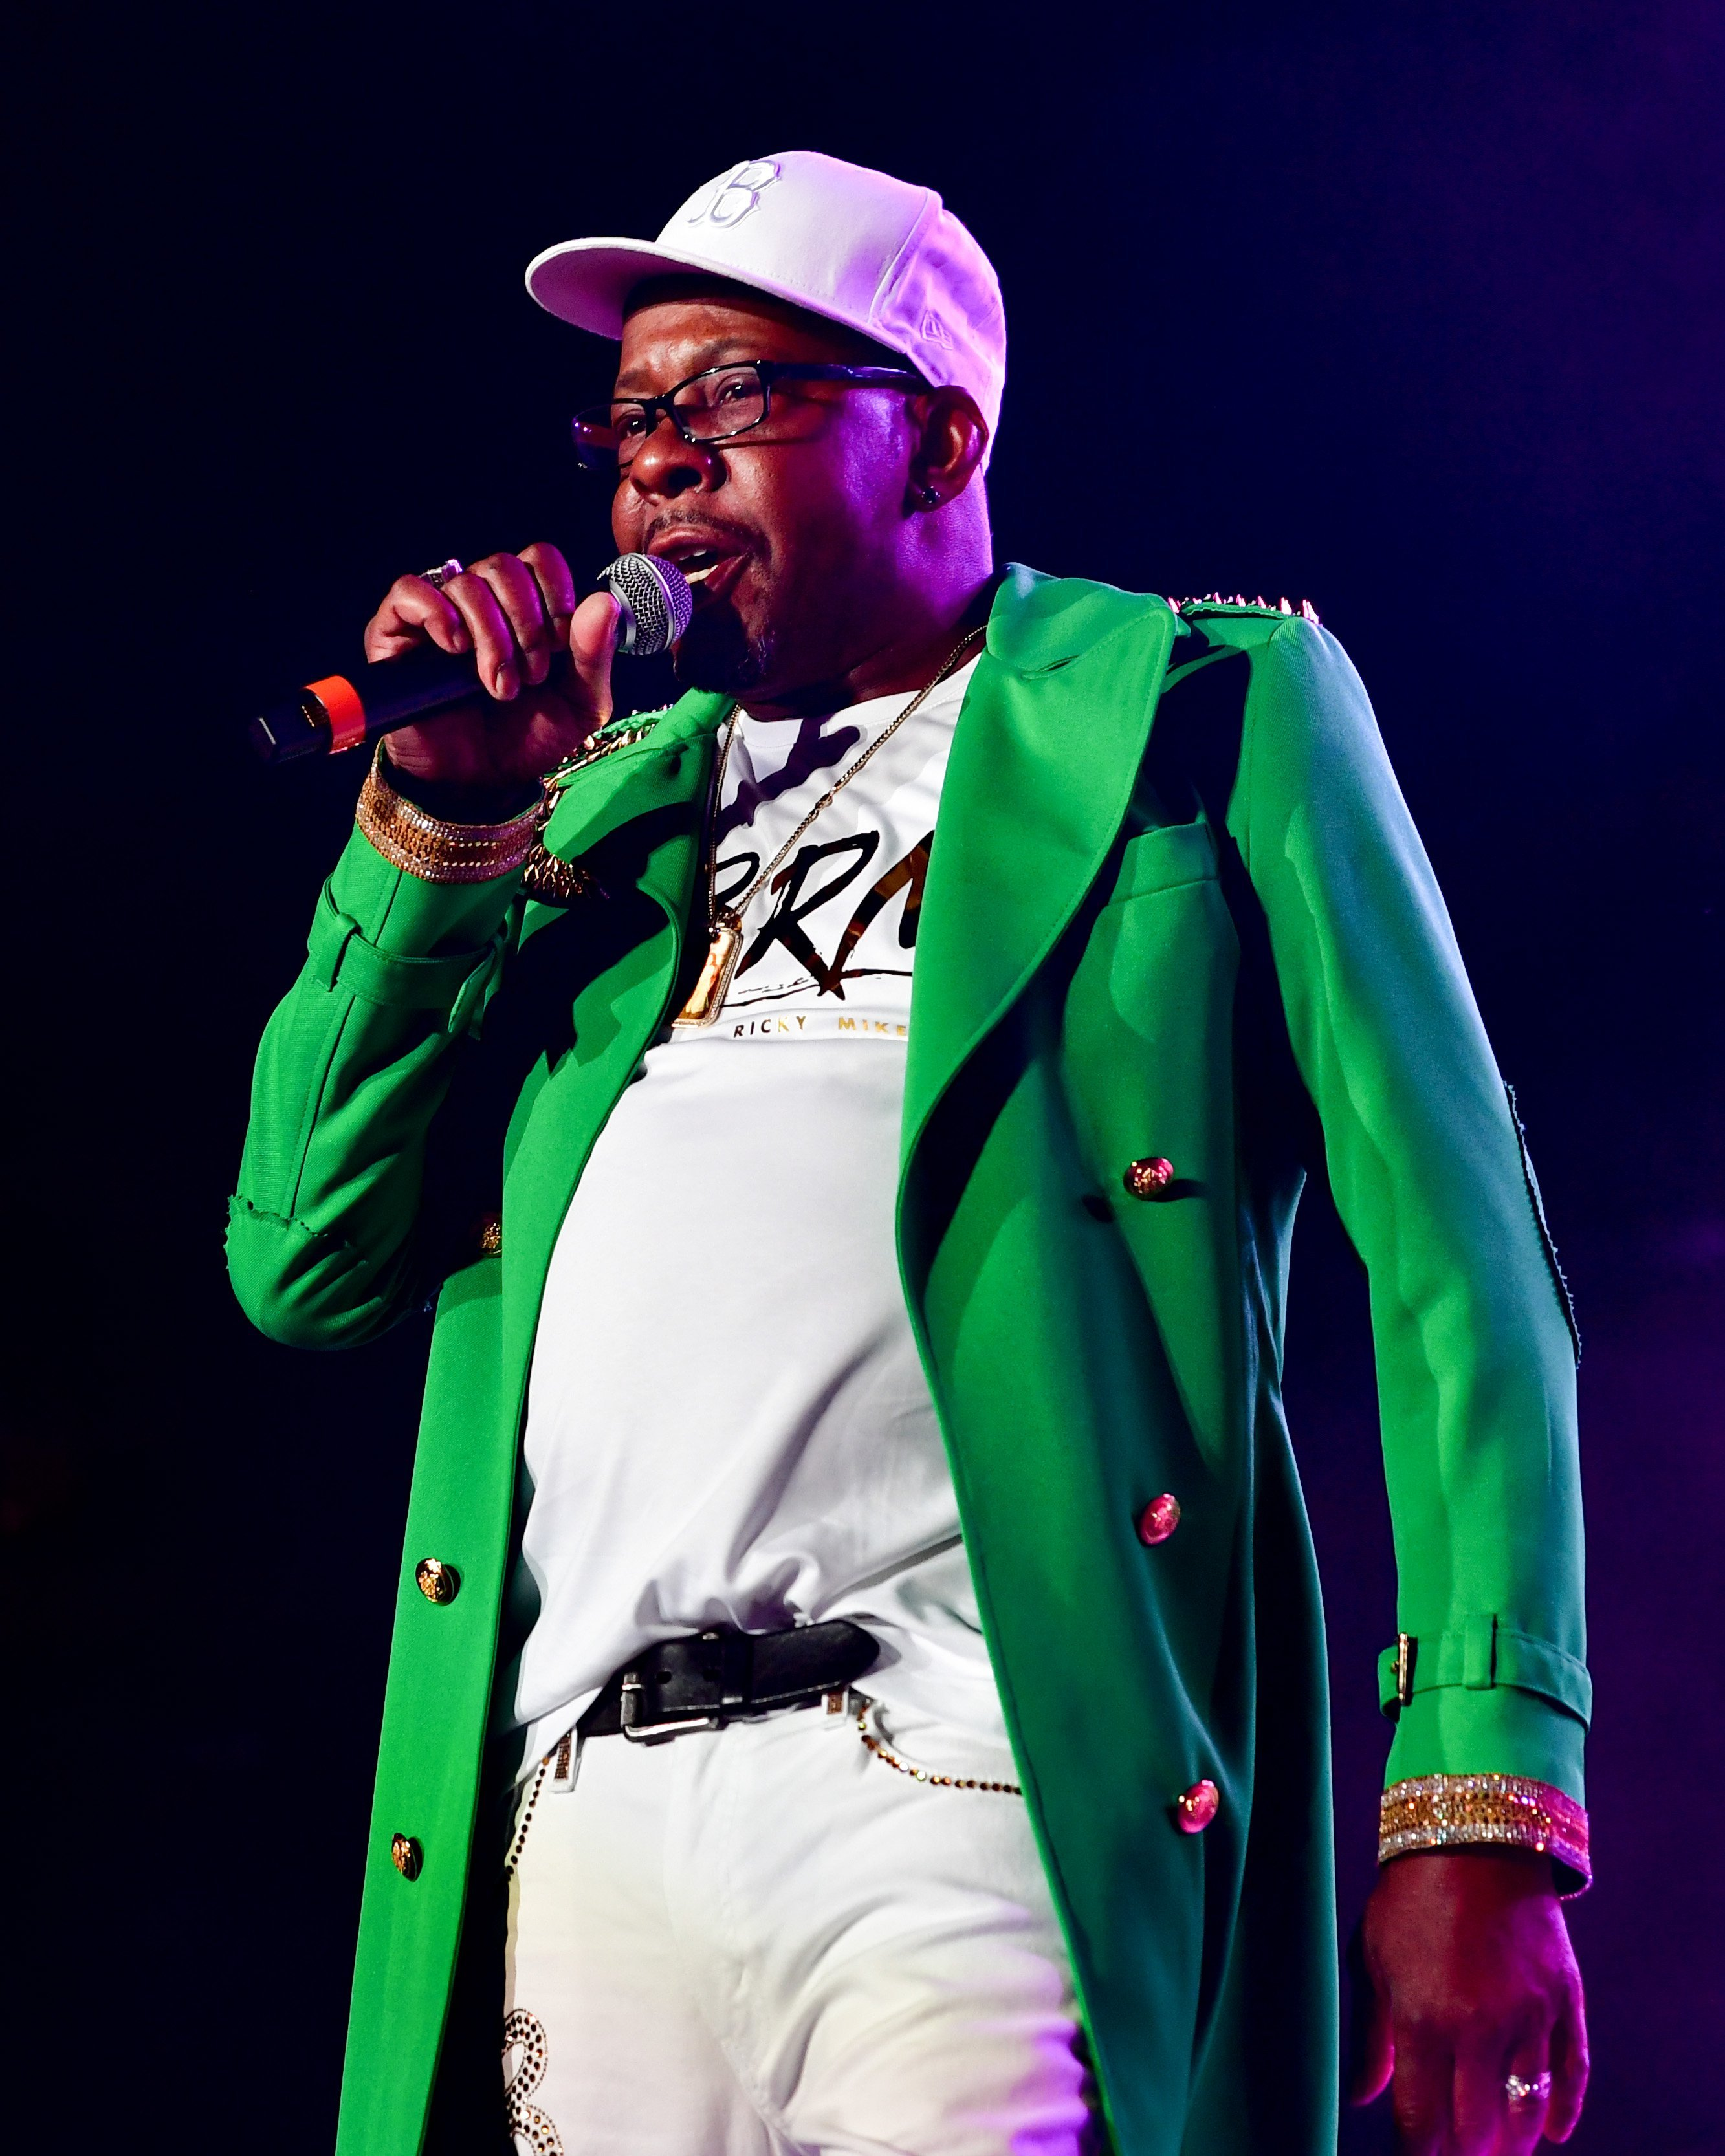 Bobby Brown performs during the ESSENCE Festival on July 05, 2019 in Louisiana | Photos: Getty Images